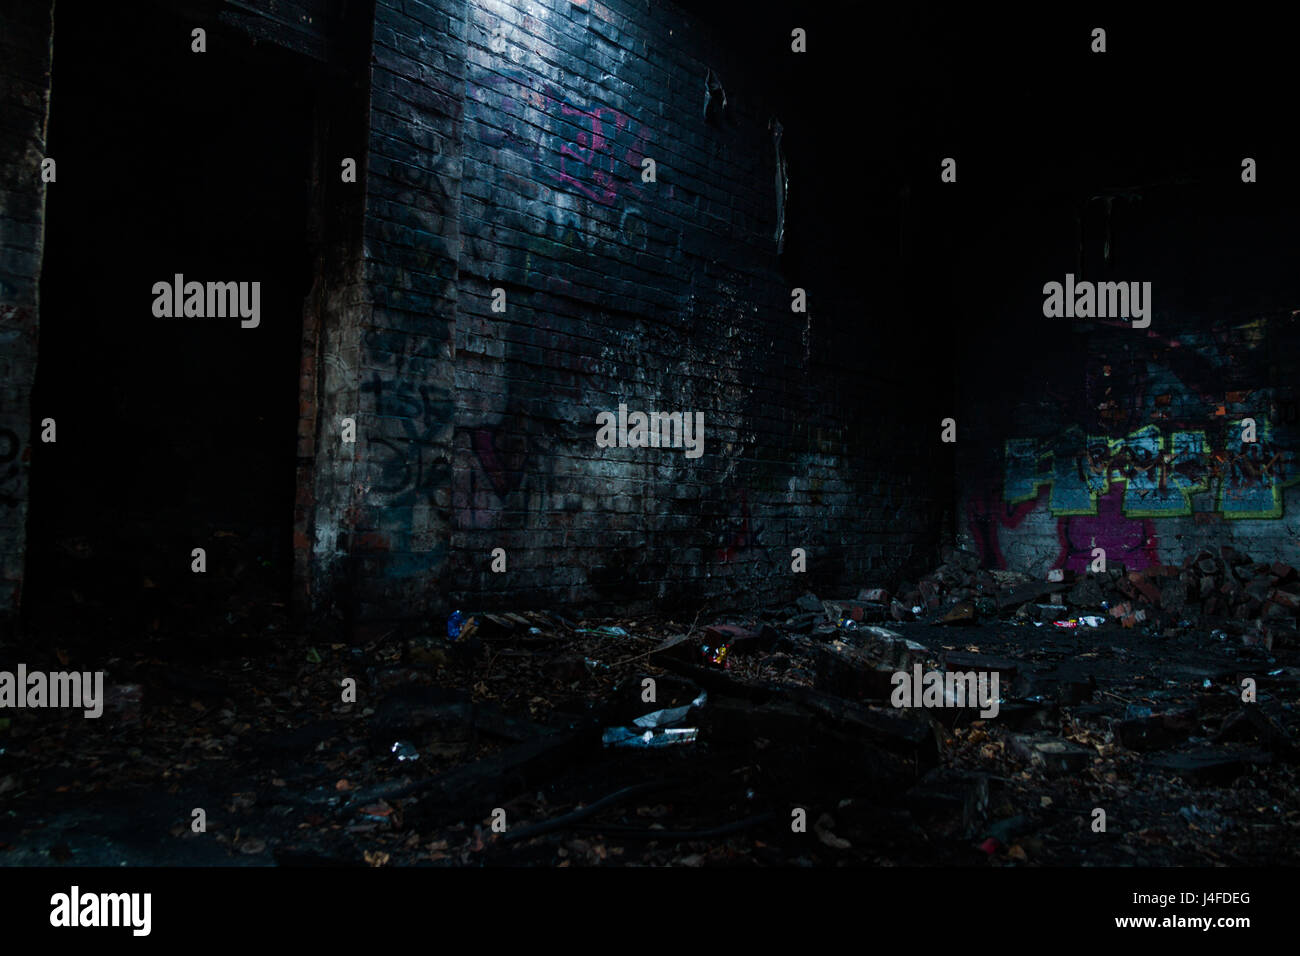 Long exposure of a skylight in an abandoned building - Stock Image